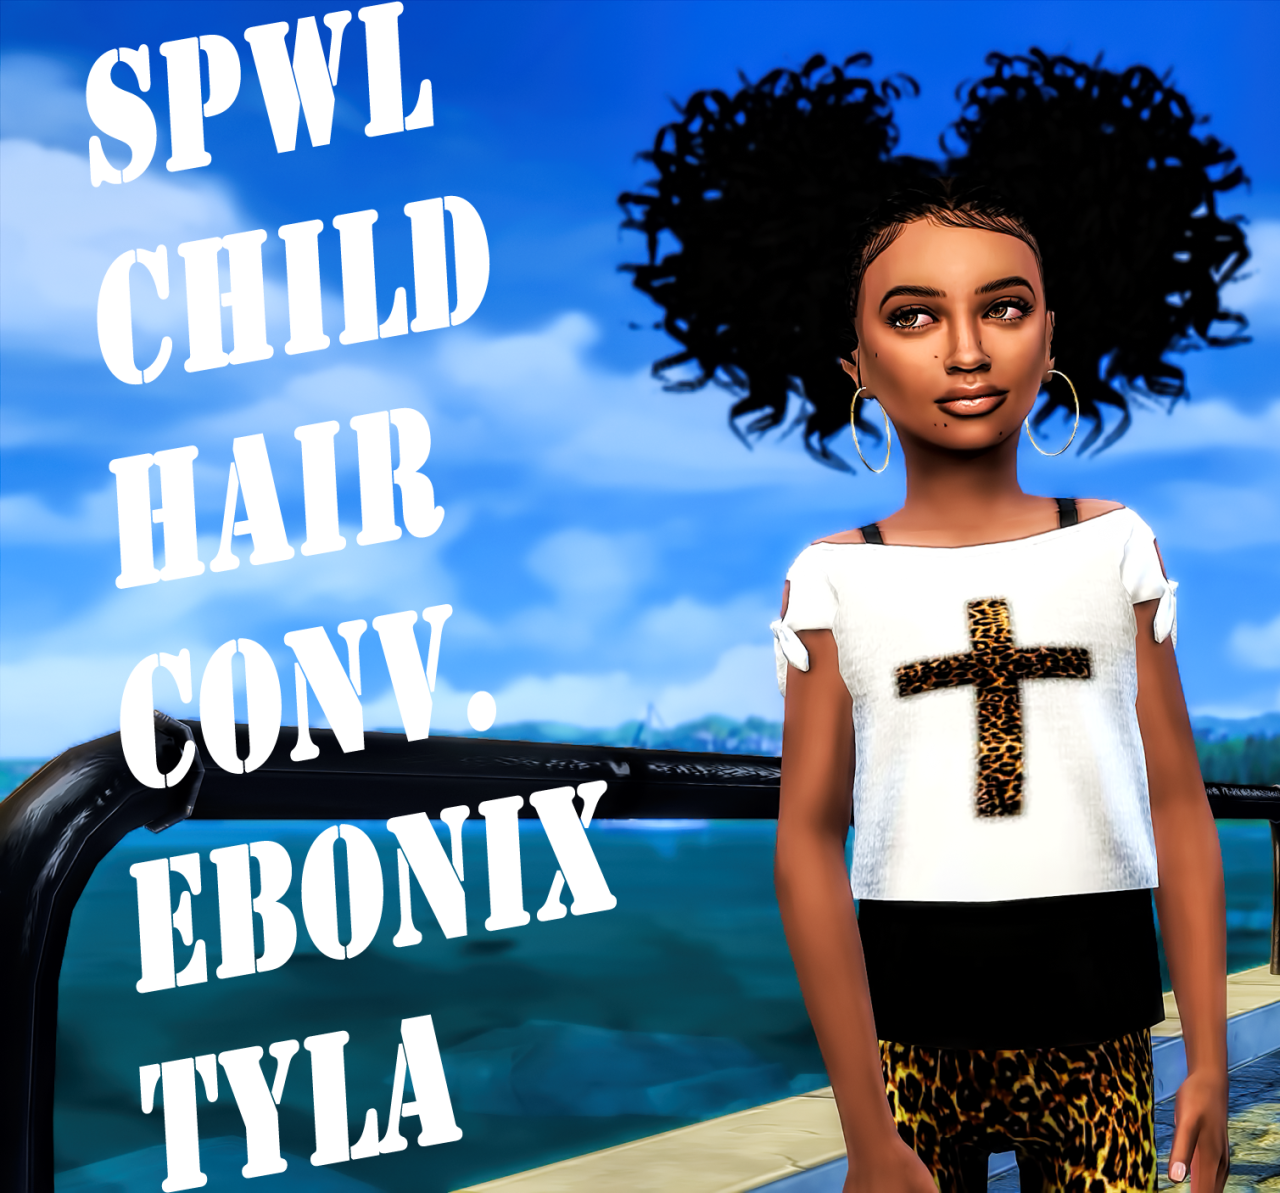 lana cc finds spwl cf ebonix baby tyla hair ts4 hair kids